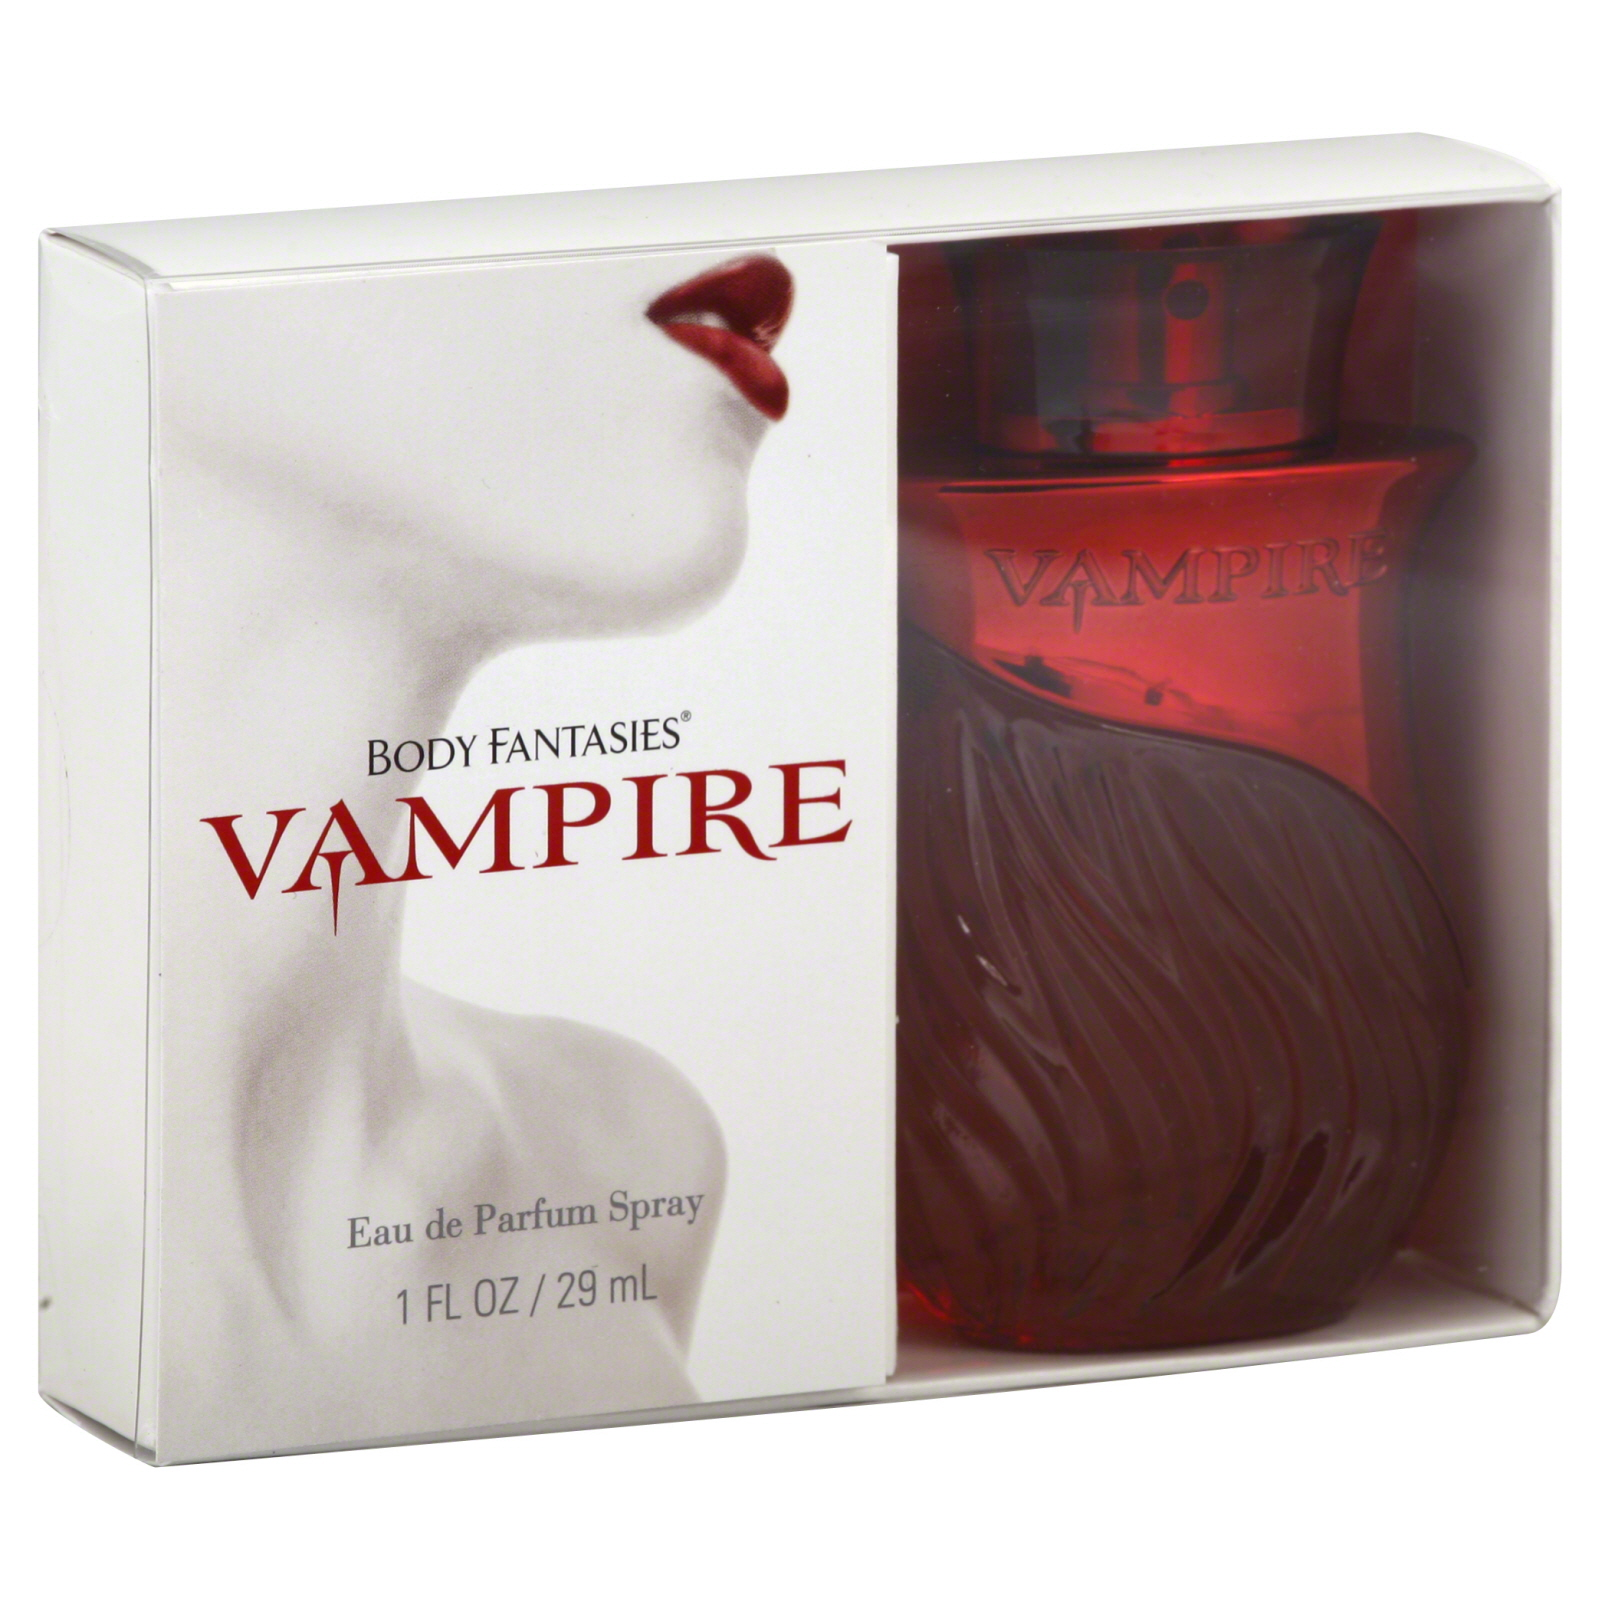 Eau de Parfum Spray, Vampire, 1 fl oz (29 ml)